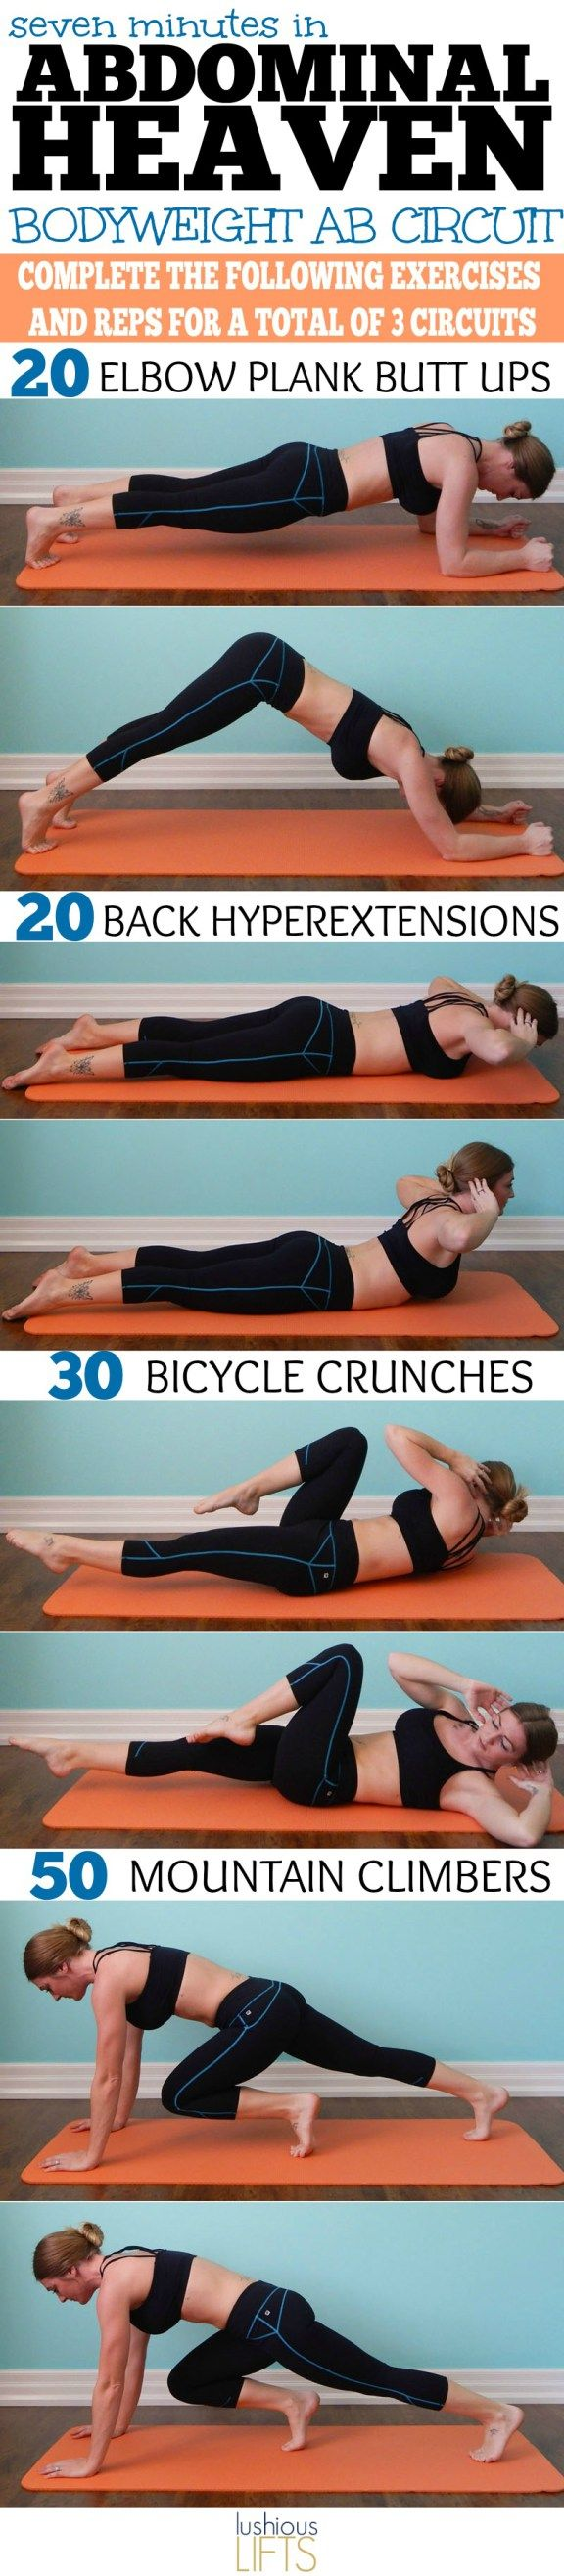 Seven minutes in Abdominal Heaven {Bodyweight Ab Circuit Workout}